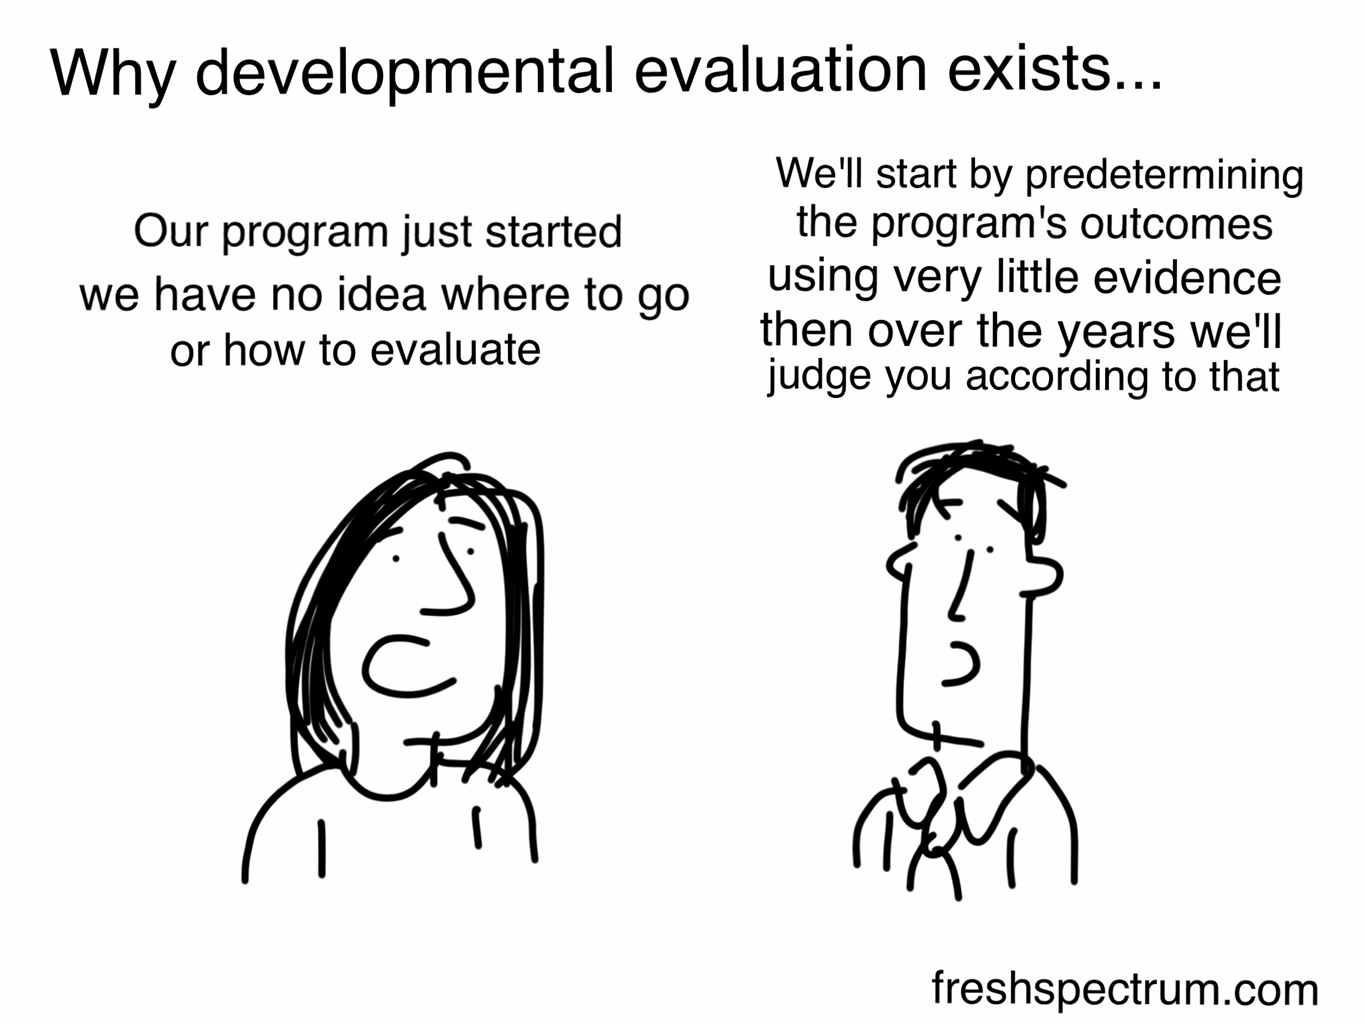 6 Developmental Evaluation Cartoons For assessment purposes aimed to present exemplary applications about developing a concept cartoon test, planning for a scoring key and the analysis process. freshspectrum